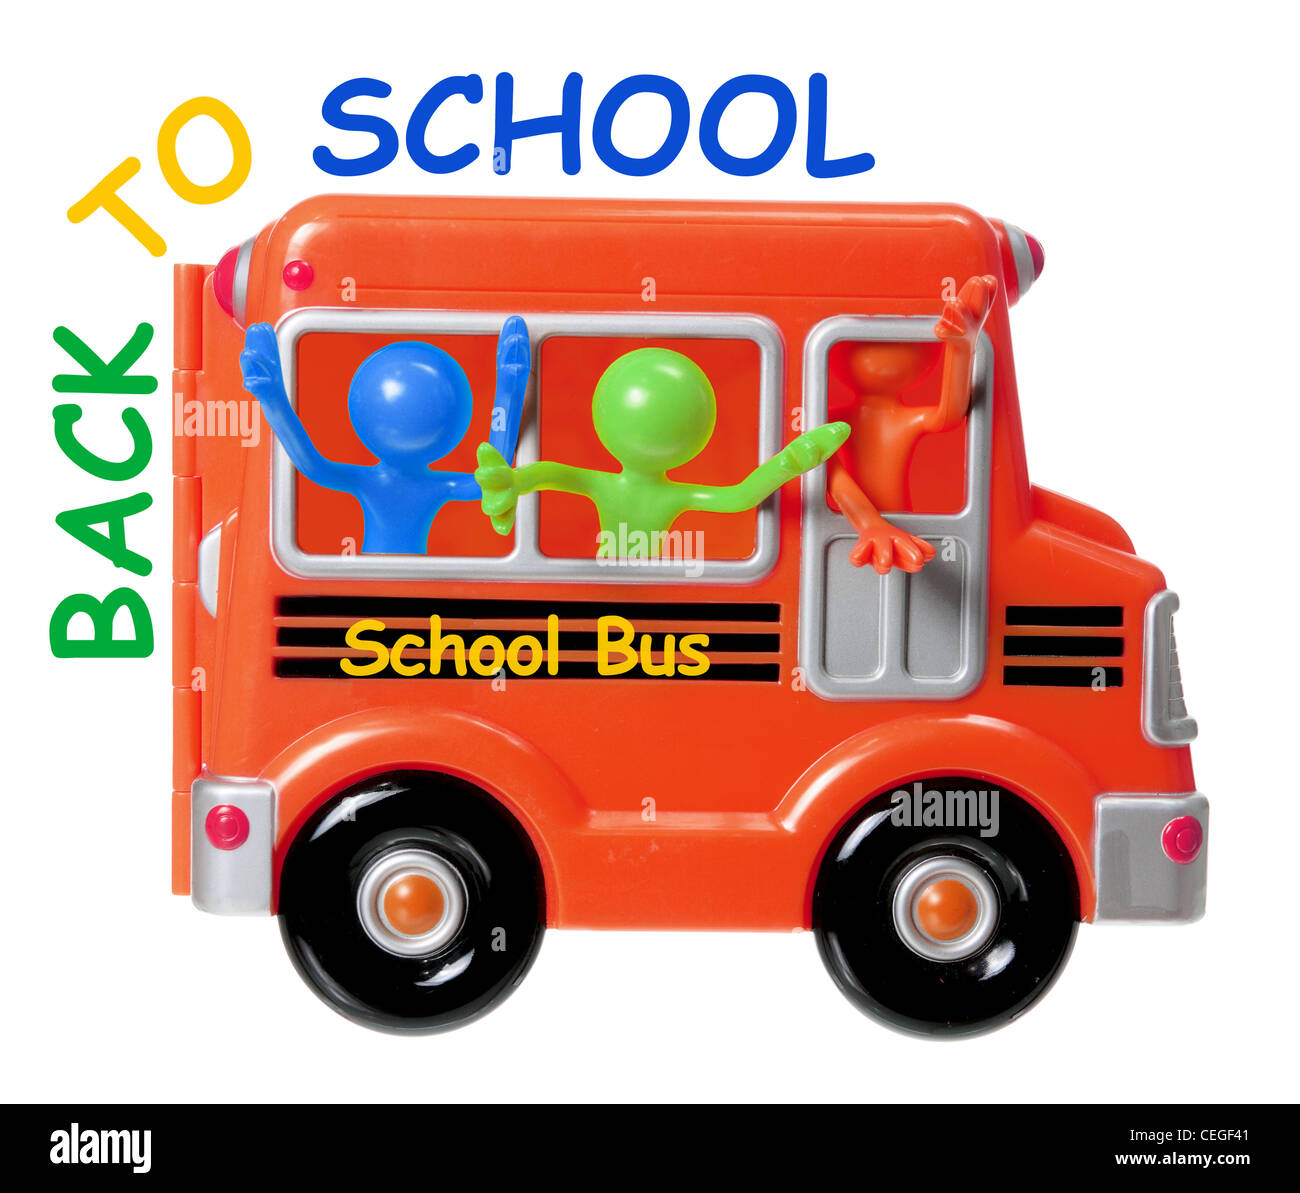 Back to School Concept - Stock Image